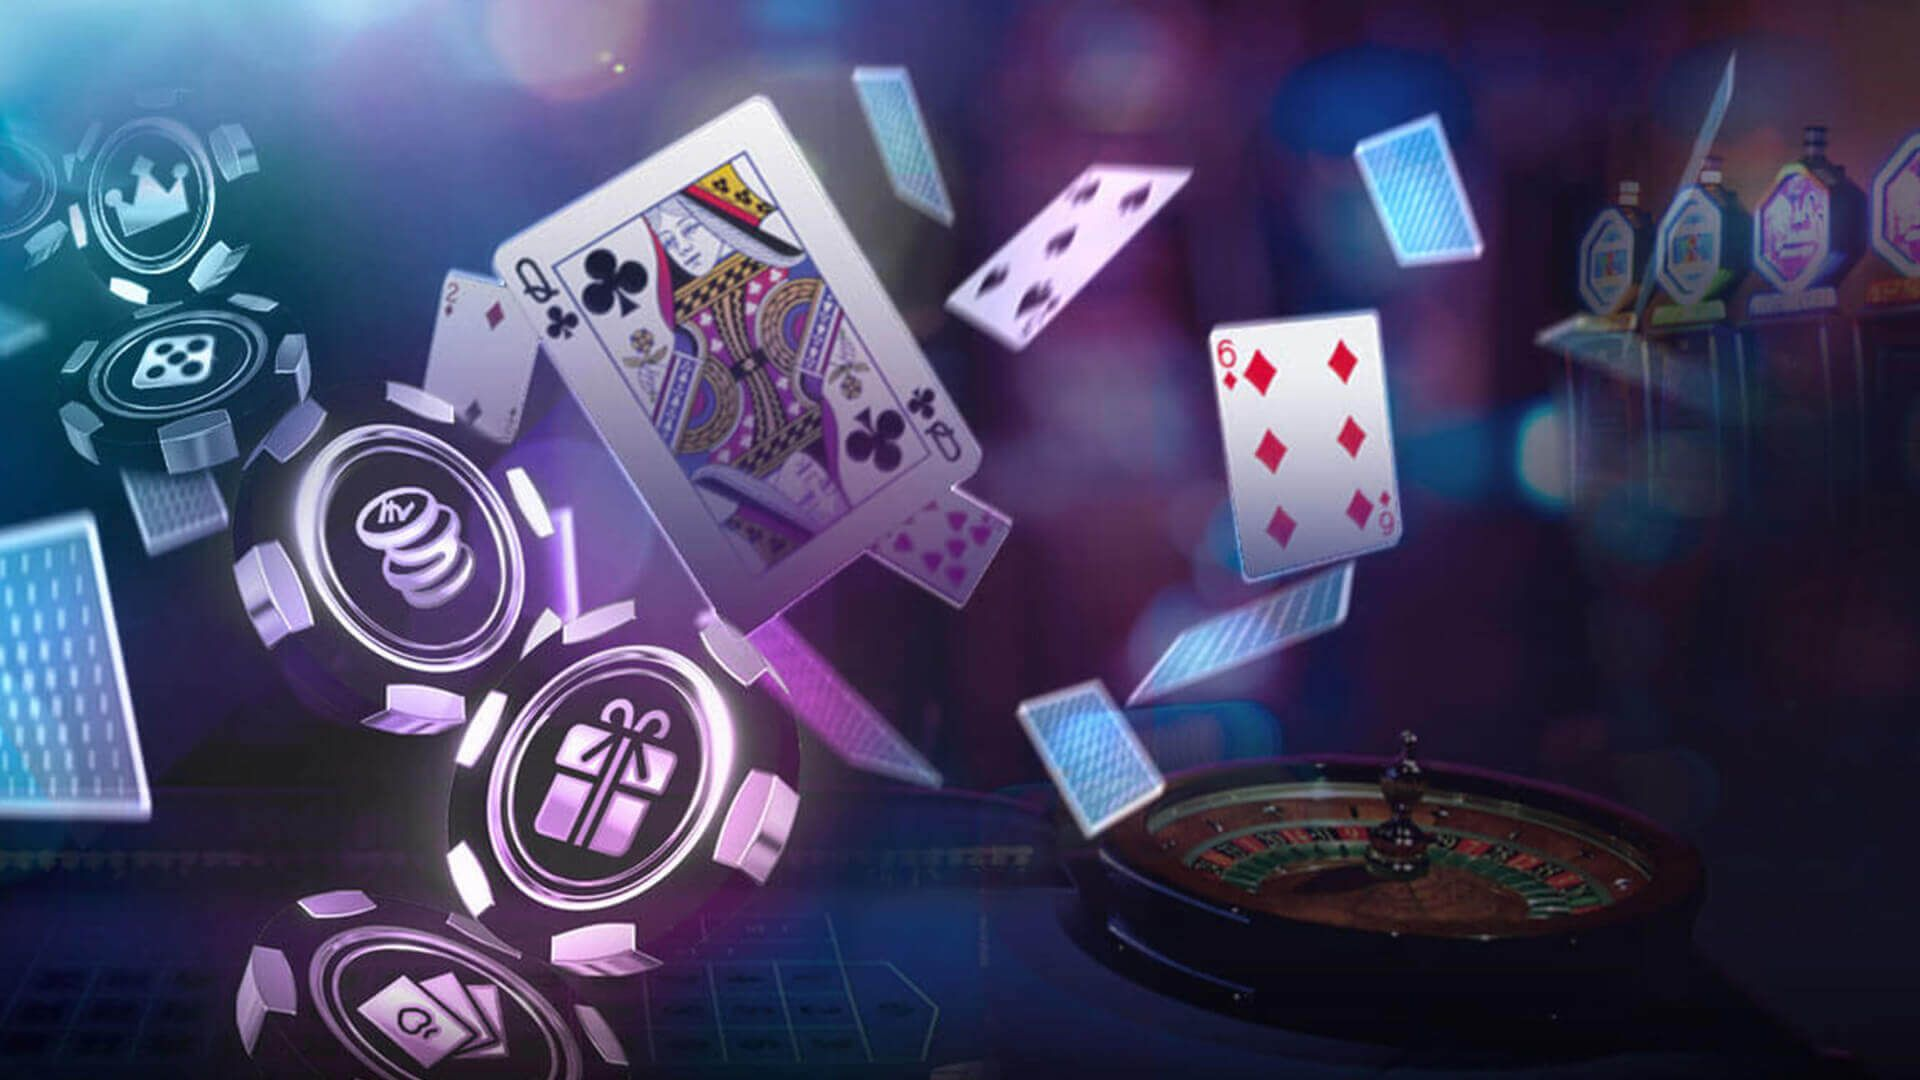 Real Money Casino Apps | Online casino games, Online casino, Play online  casino